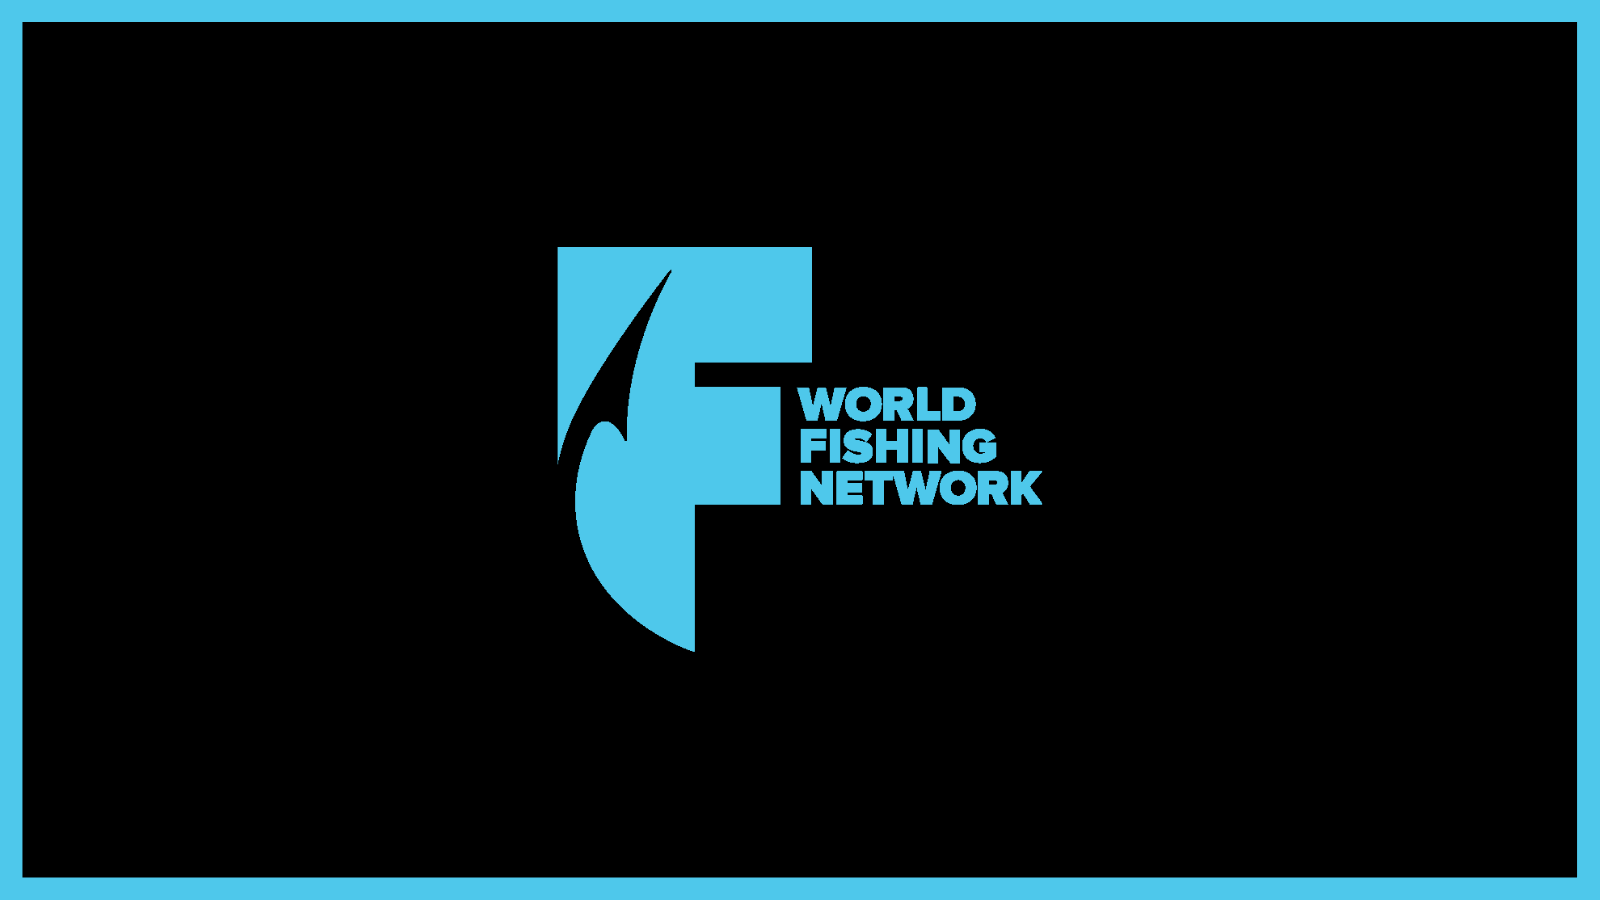 How to Watch World Fishing Network Online Without Cable